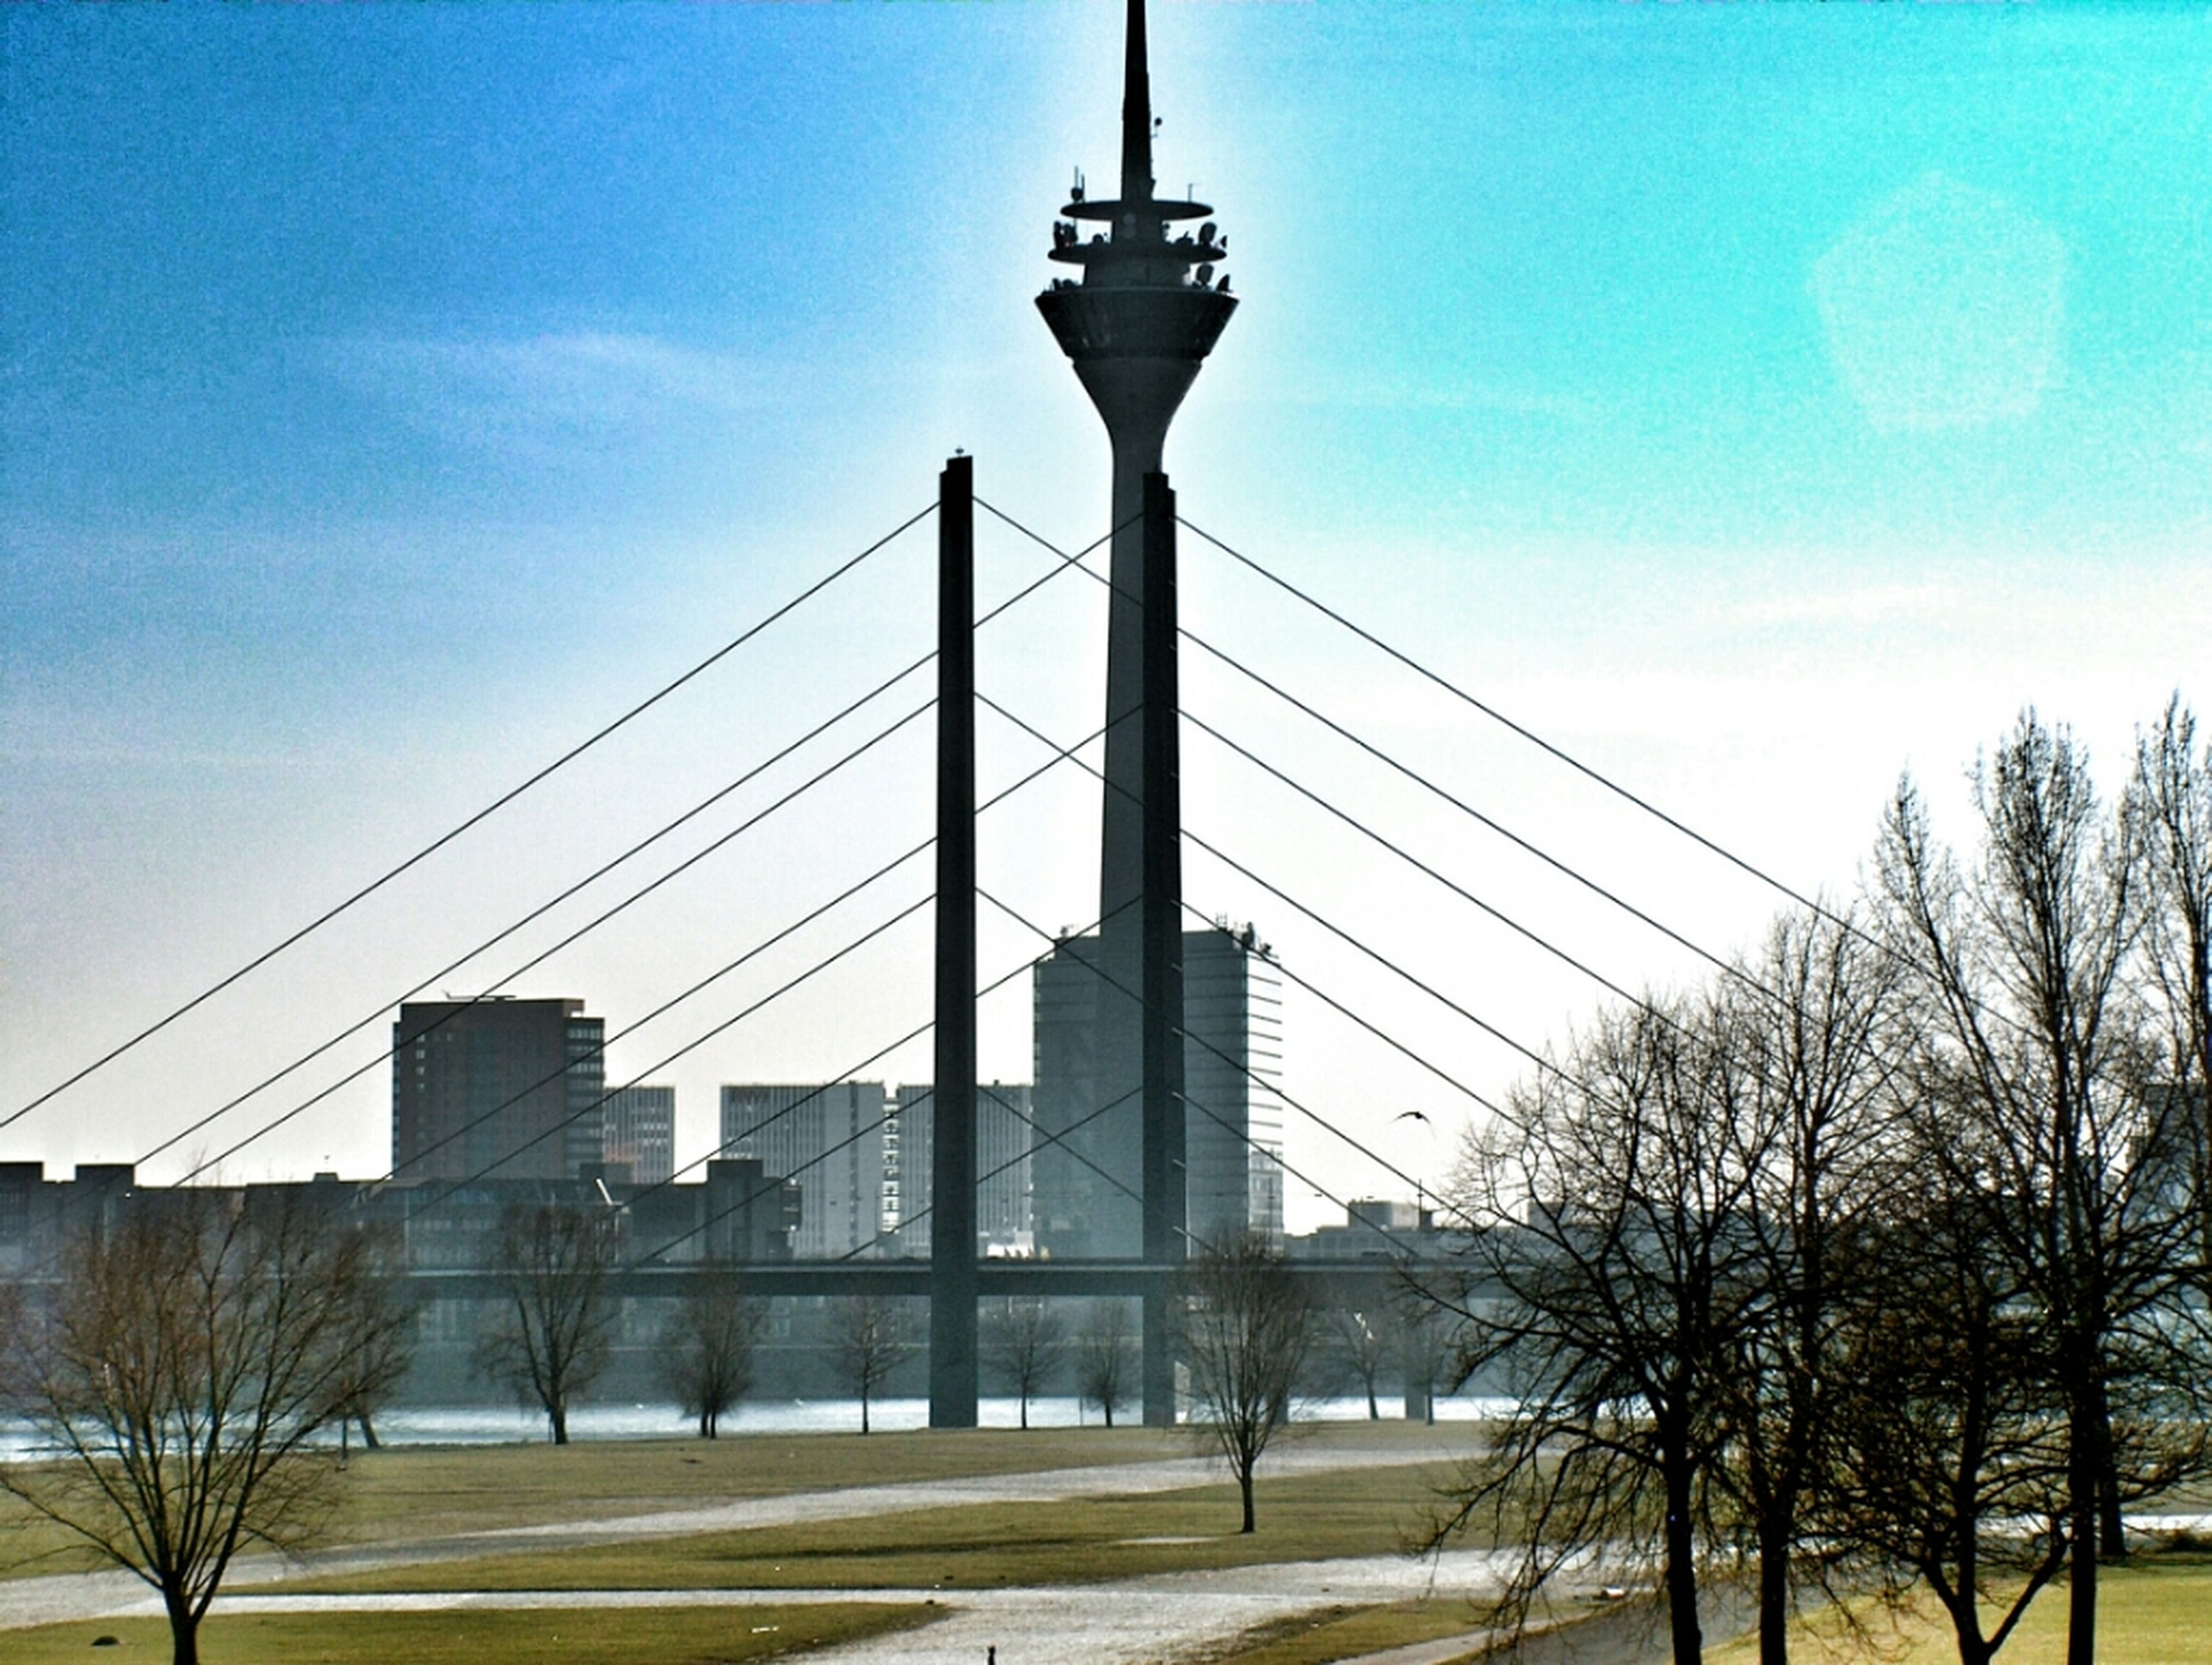 architecture, built structure, connection, sky, building exterior, low angle view, tower, city, tall - high, bridge - man made structure, communications tower, tree, street light, electricity pylon, travel destinations, engineering, cable, cloud, power line, electricity